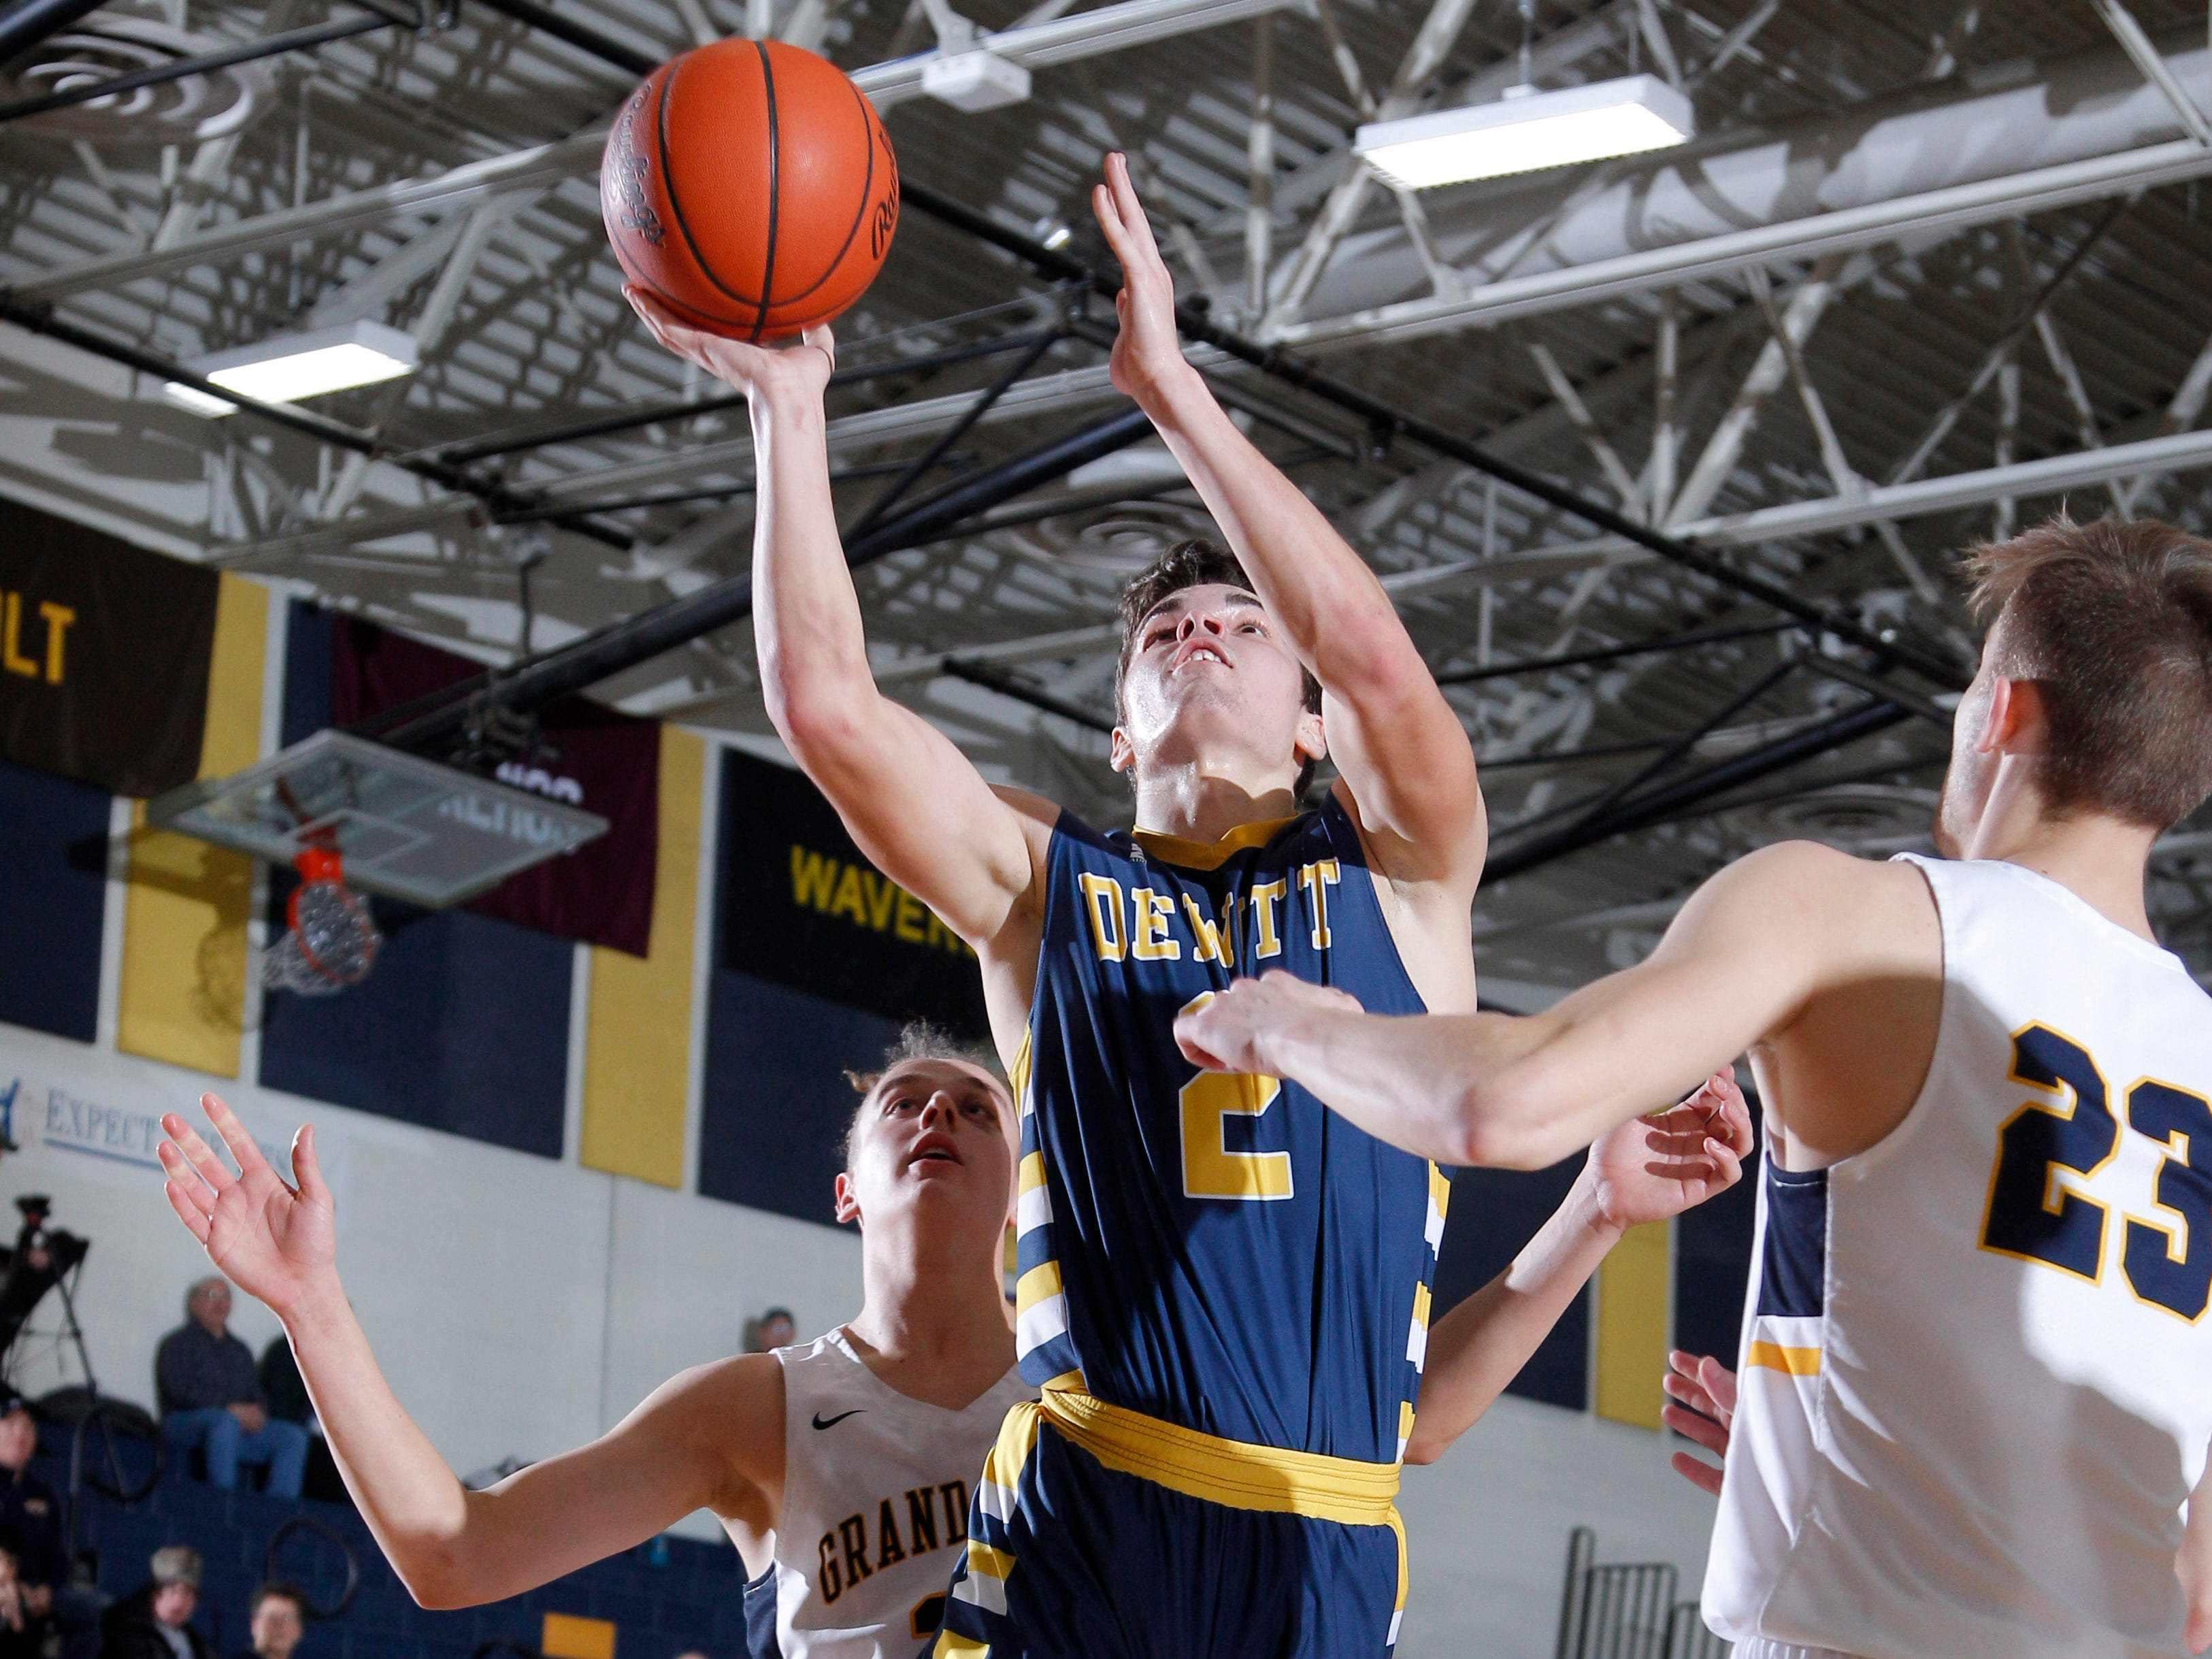 DeWitt's Isaac Hungerford, center, puts up a shot against Grand Ledge's William Jerzak, right, and Devin Gardella, Tuesday, Jan. 15, 2019, in Grand Ledge, Mich.